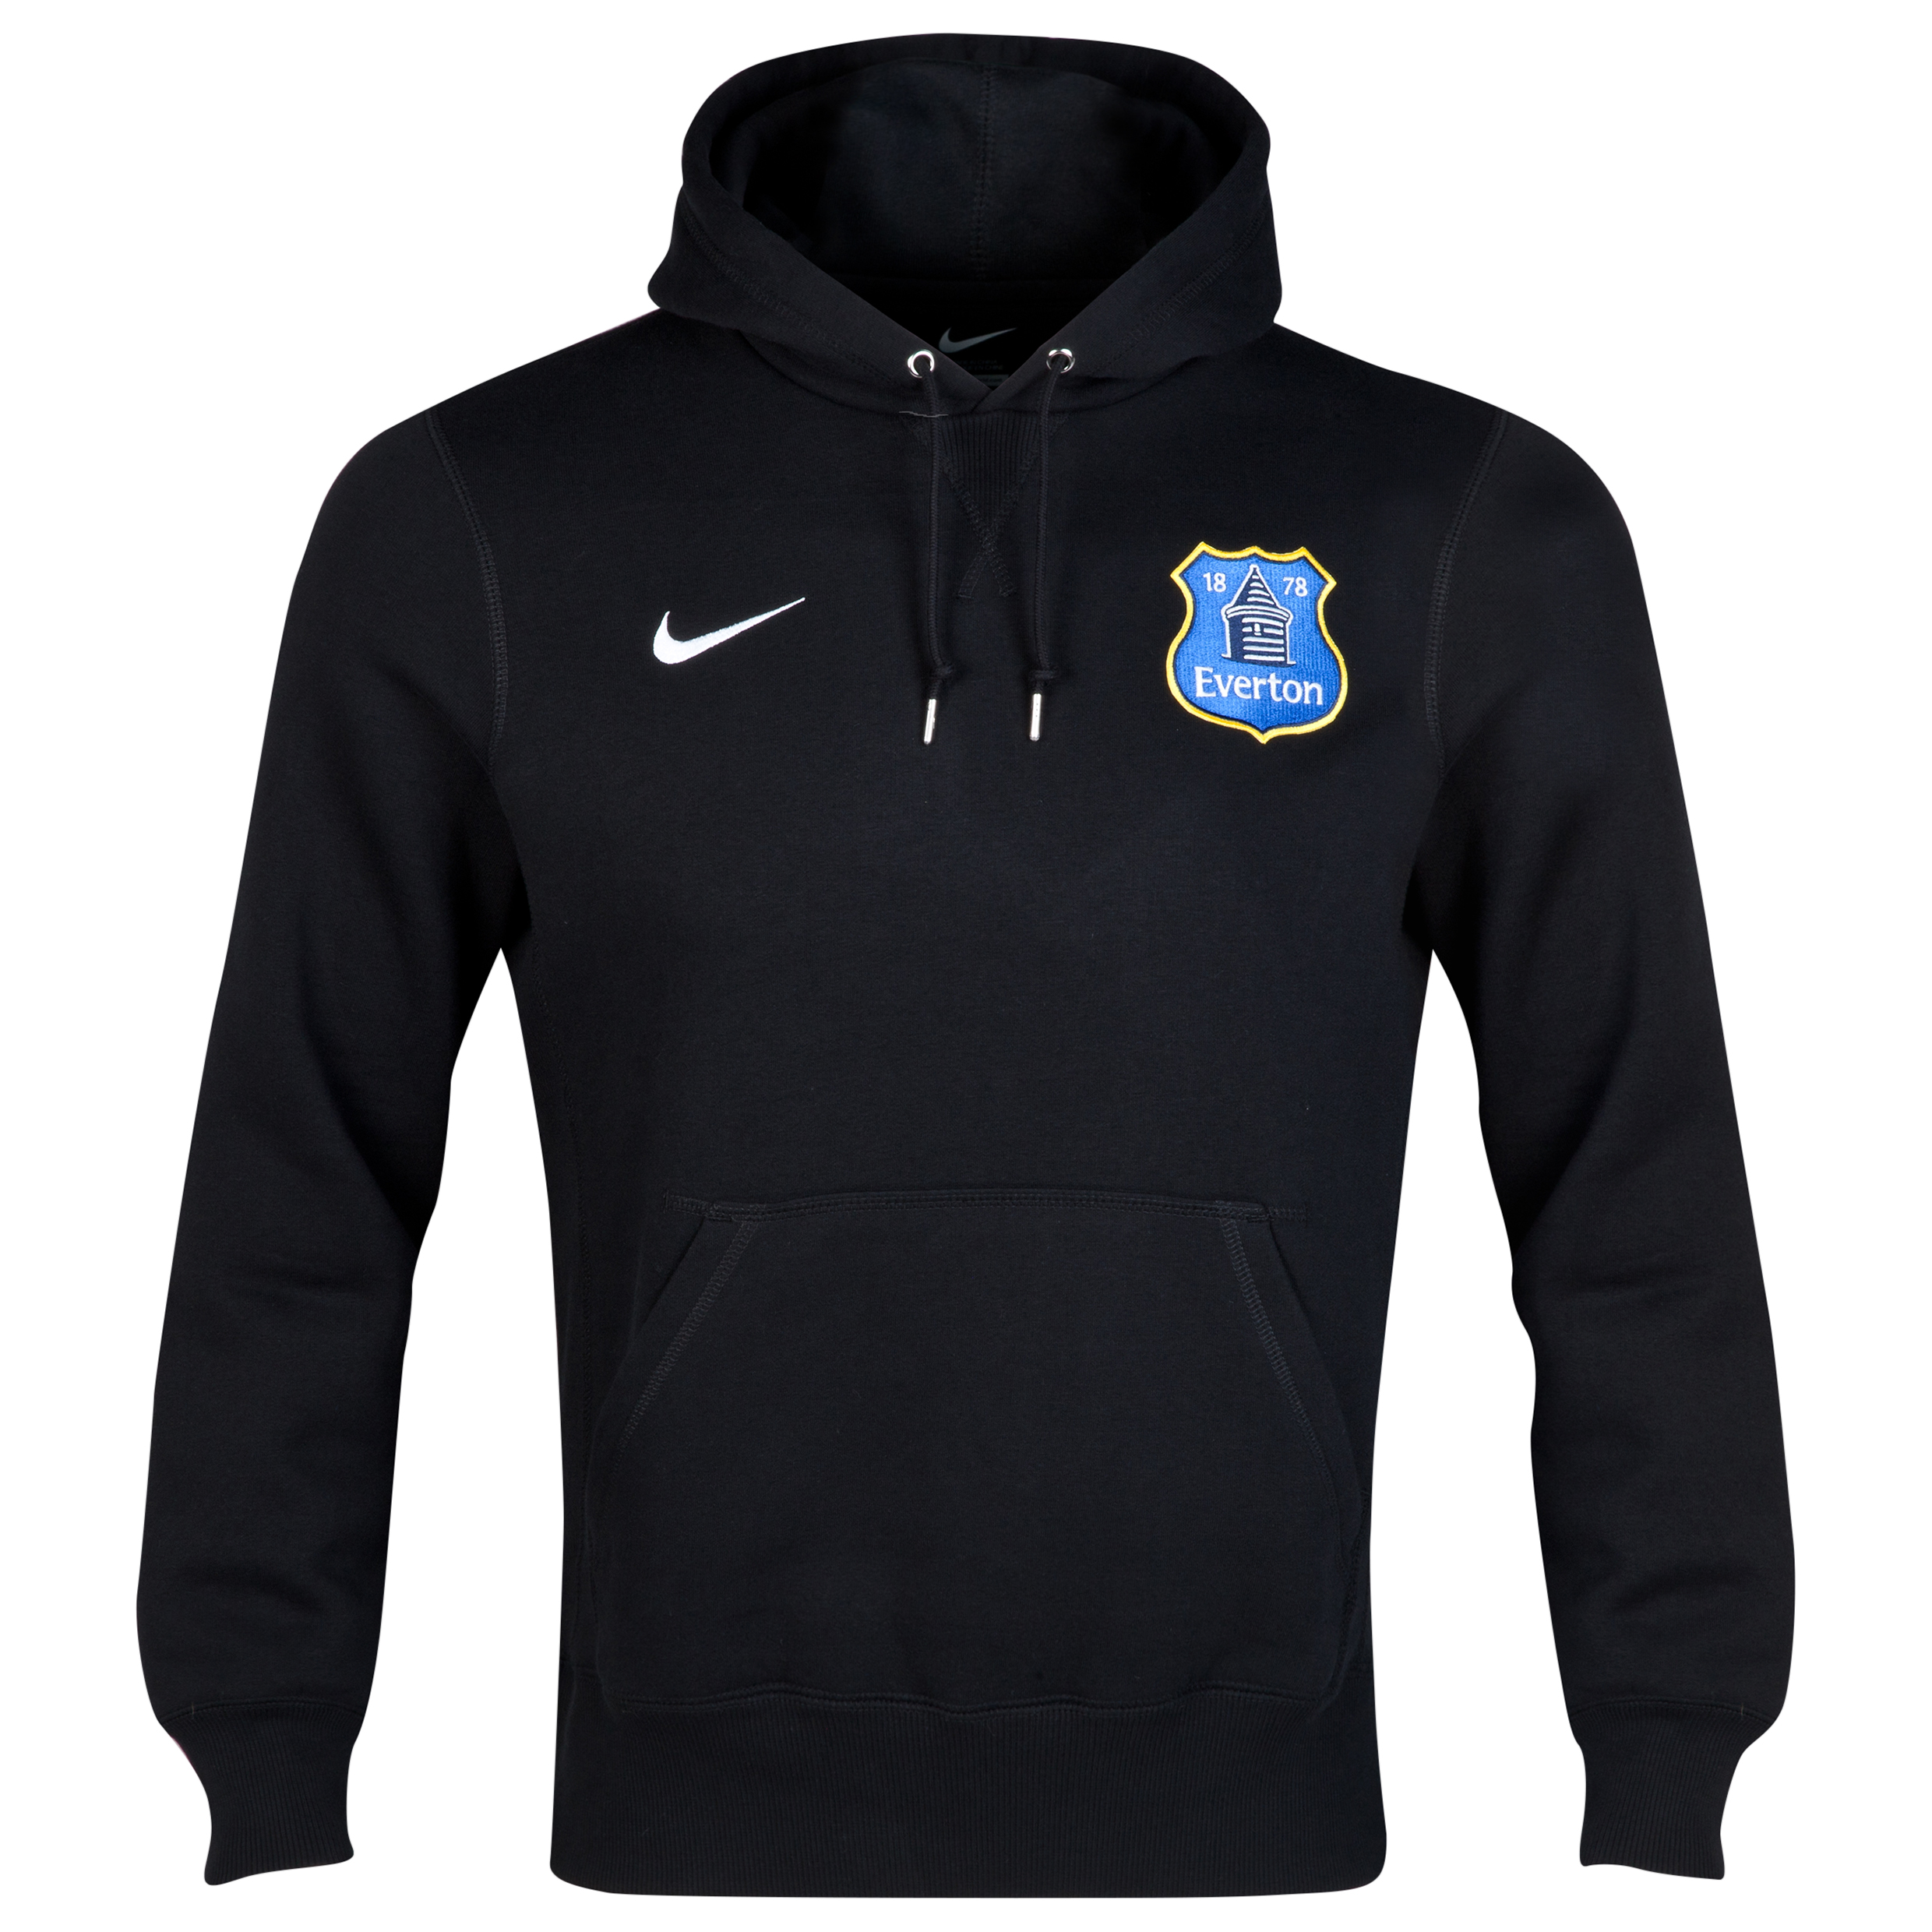 Everton Fleece Hoodie - Black/White